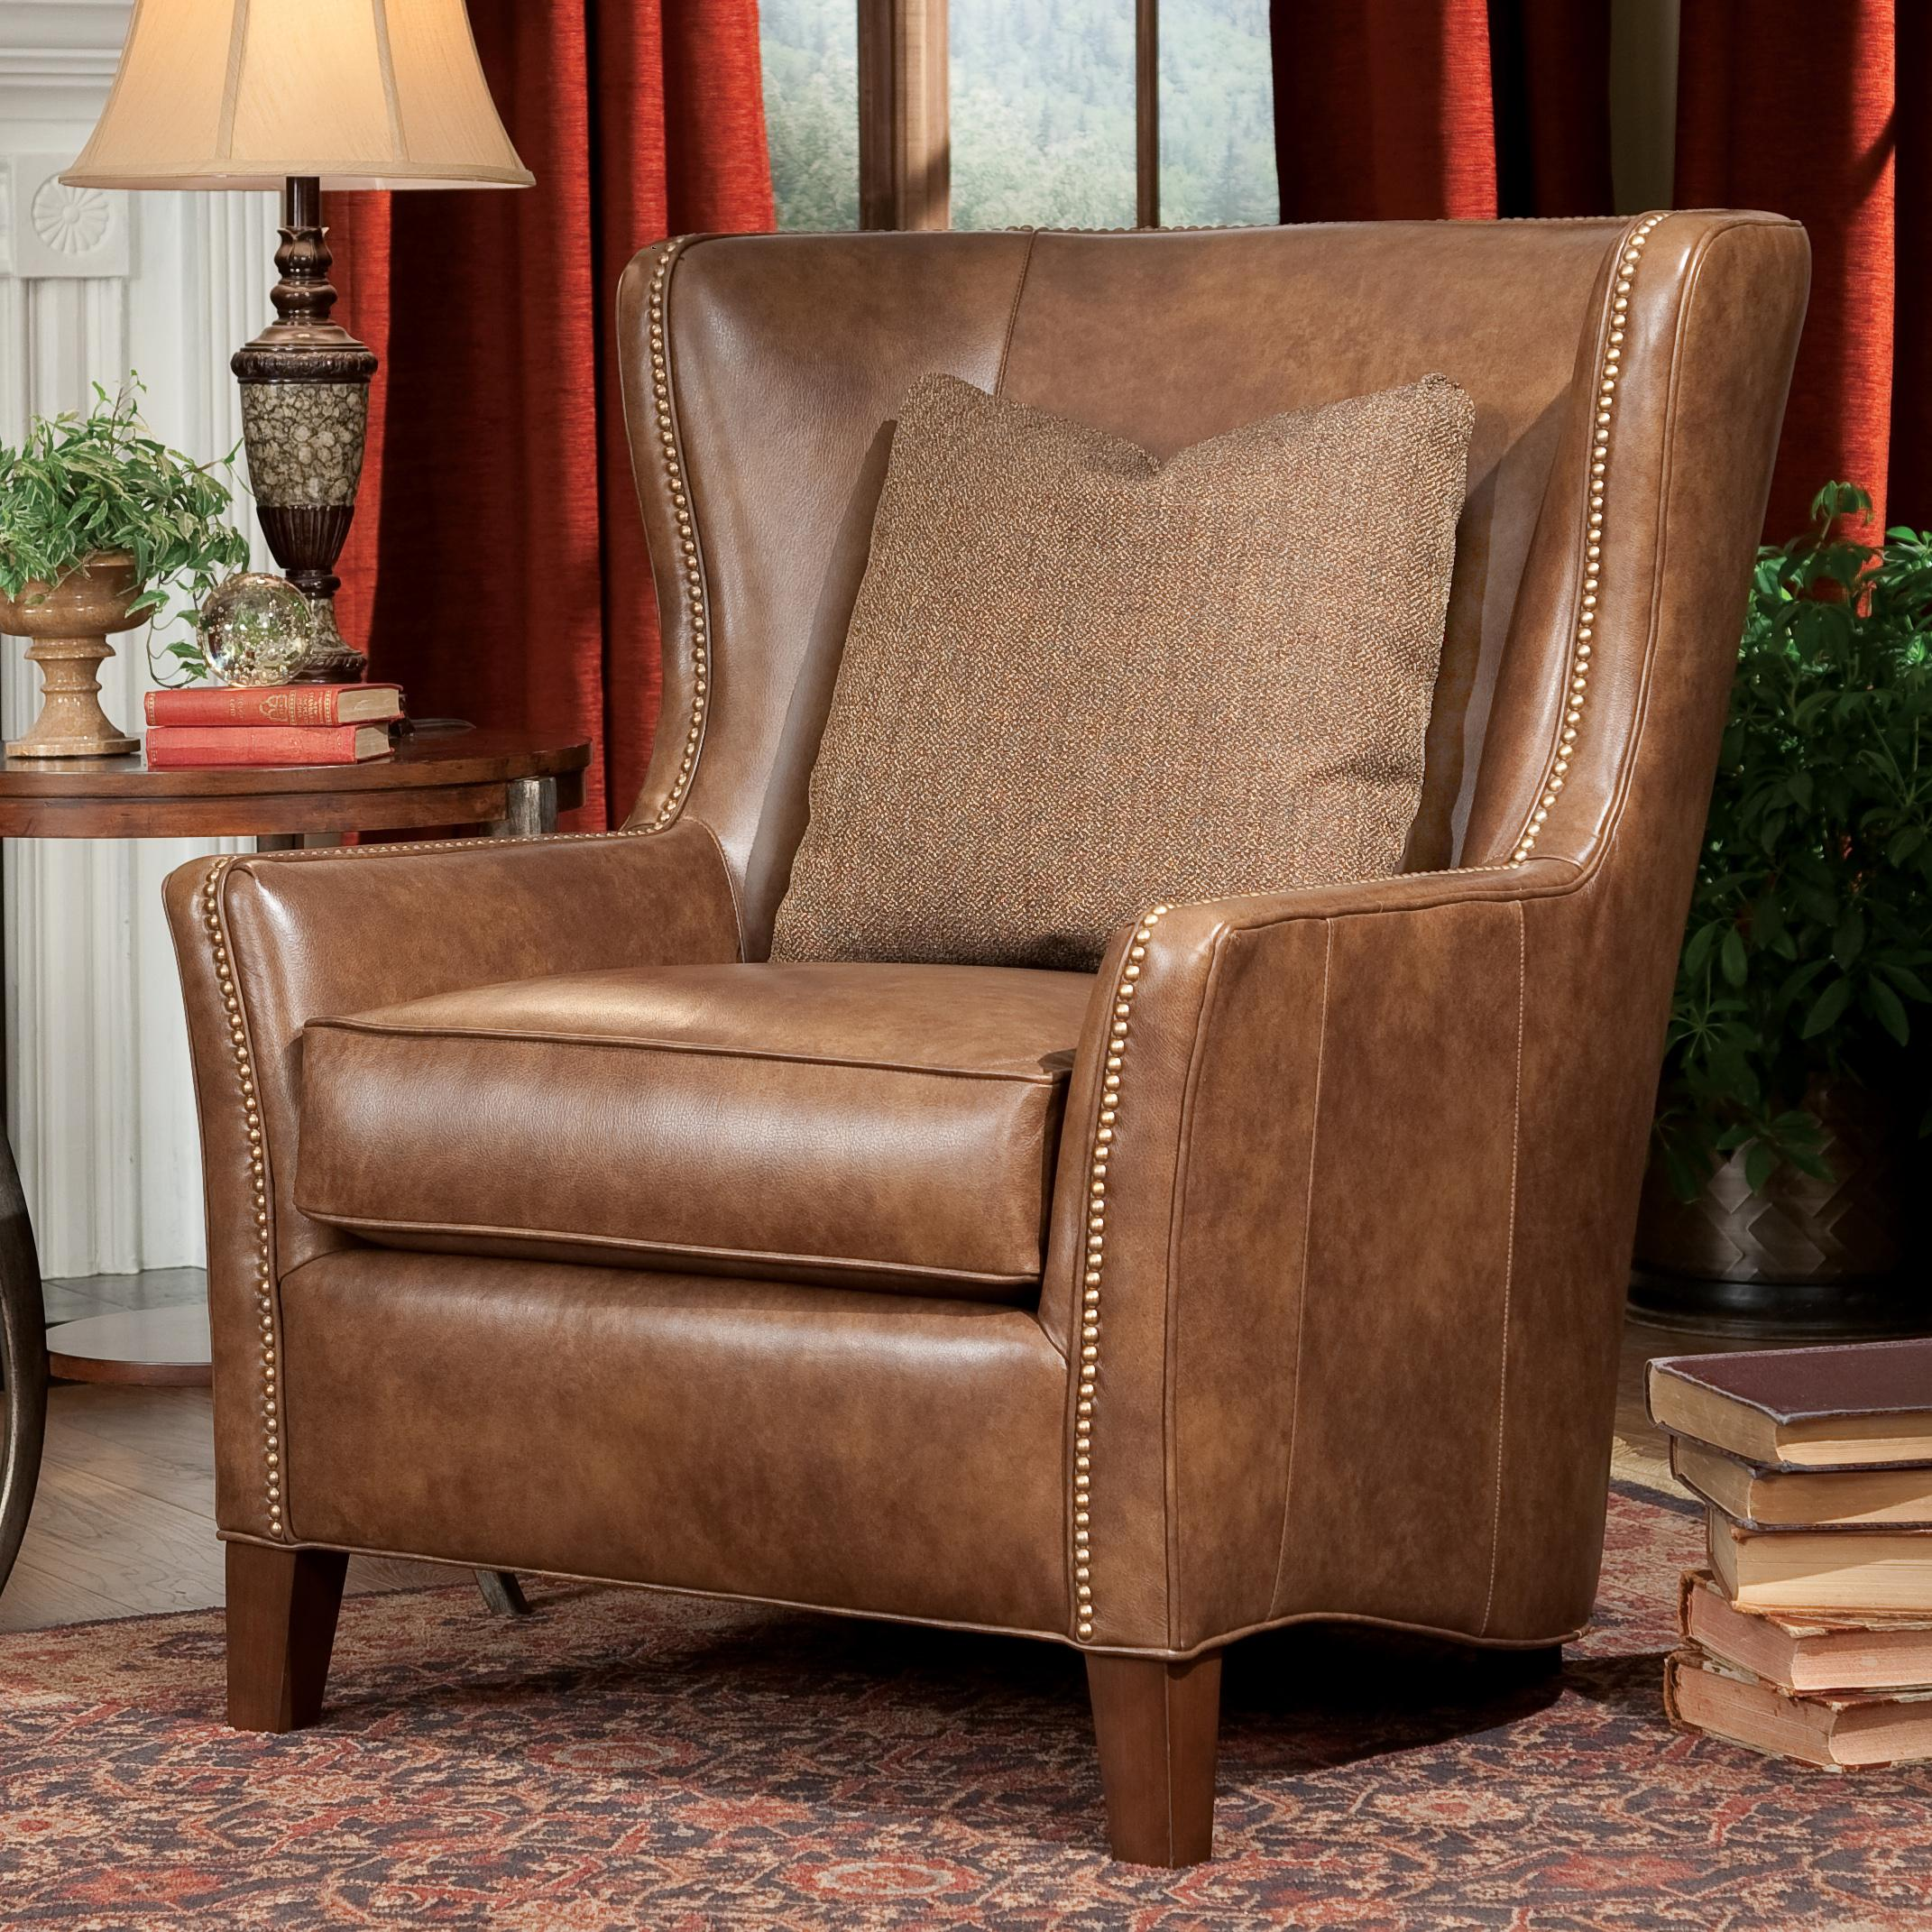 Modern Wing Chair Contemporary Wingback Chair With Track Arms By Smith